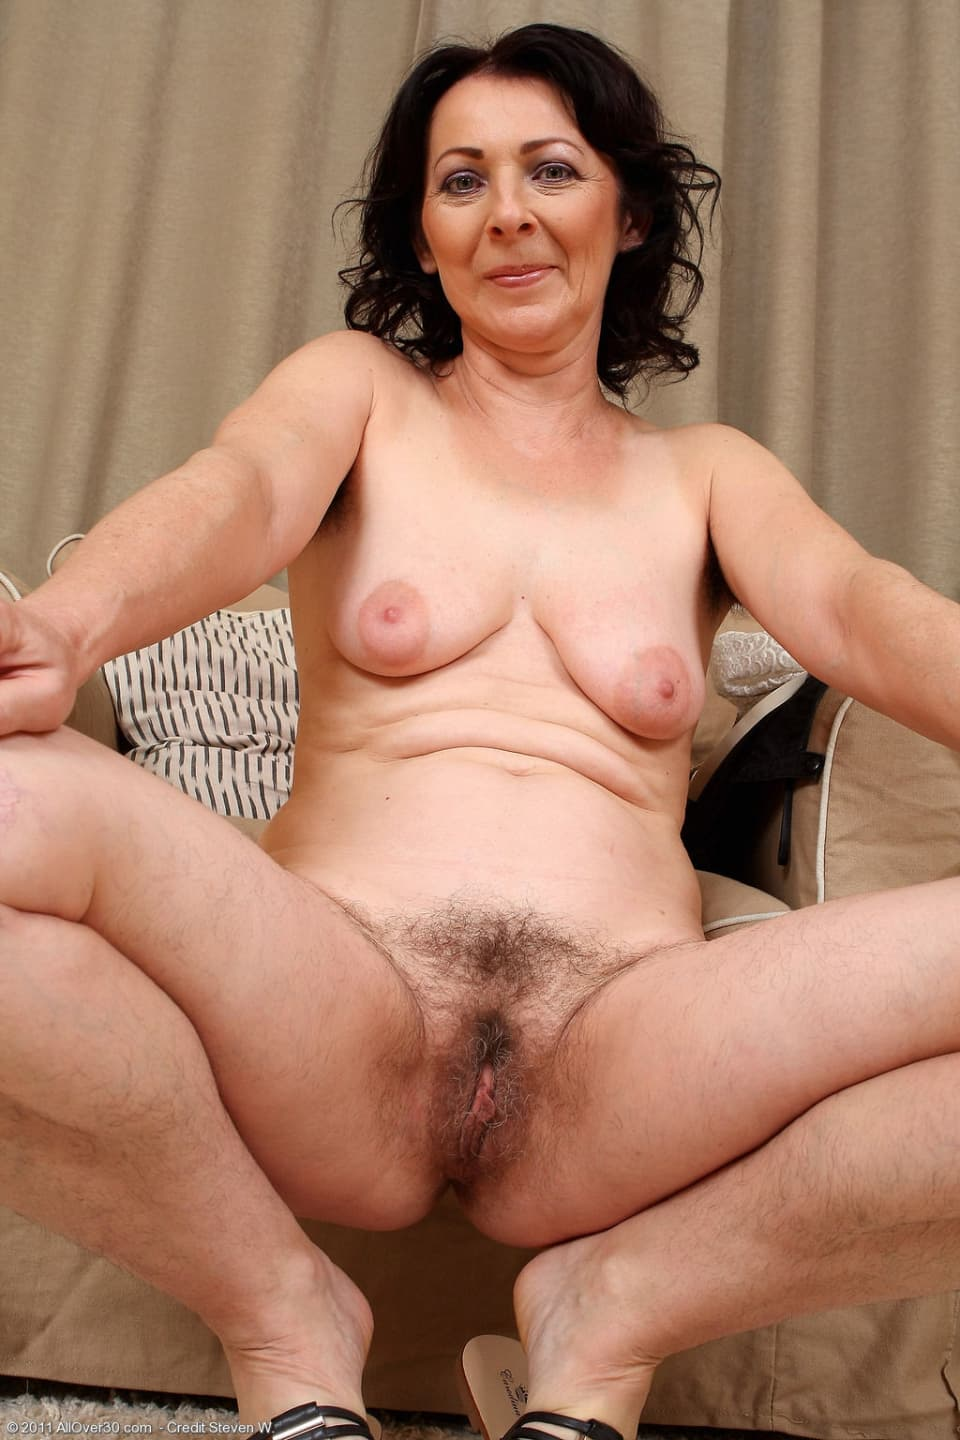 Did not very old nude women hairy seems